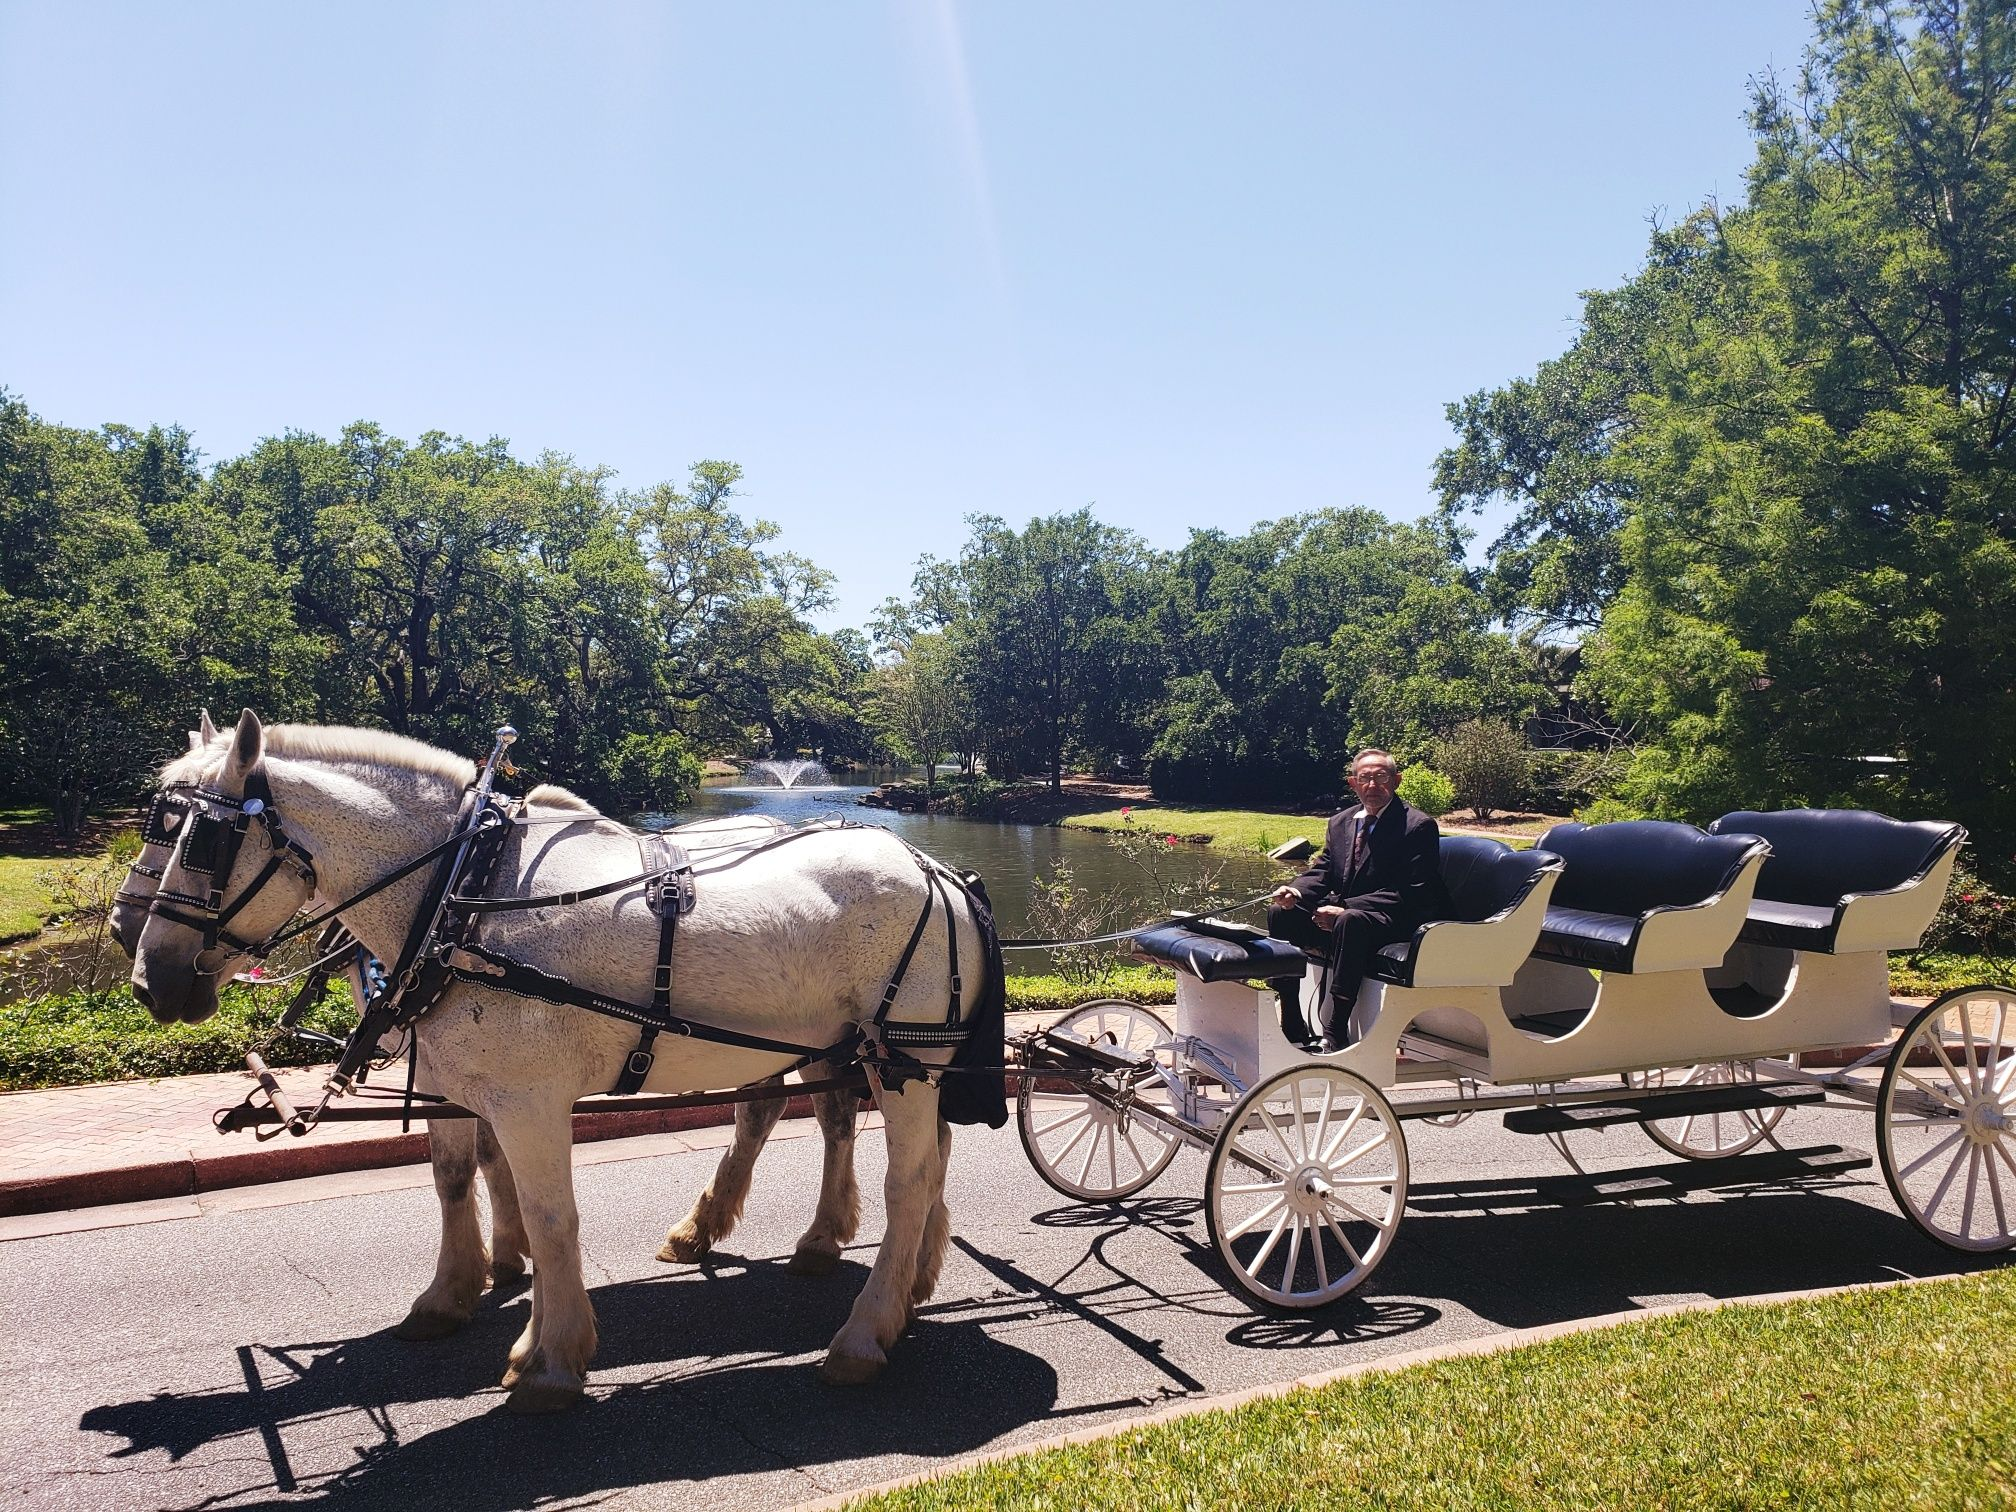 Grand Carriage Rides For Easter Point Clear Al Grandmoments Easter Grand Hotel Beach Hotels Hotels And Resorts